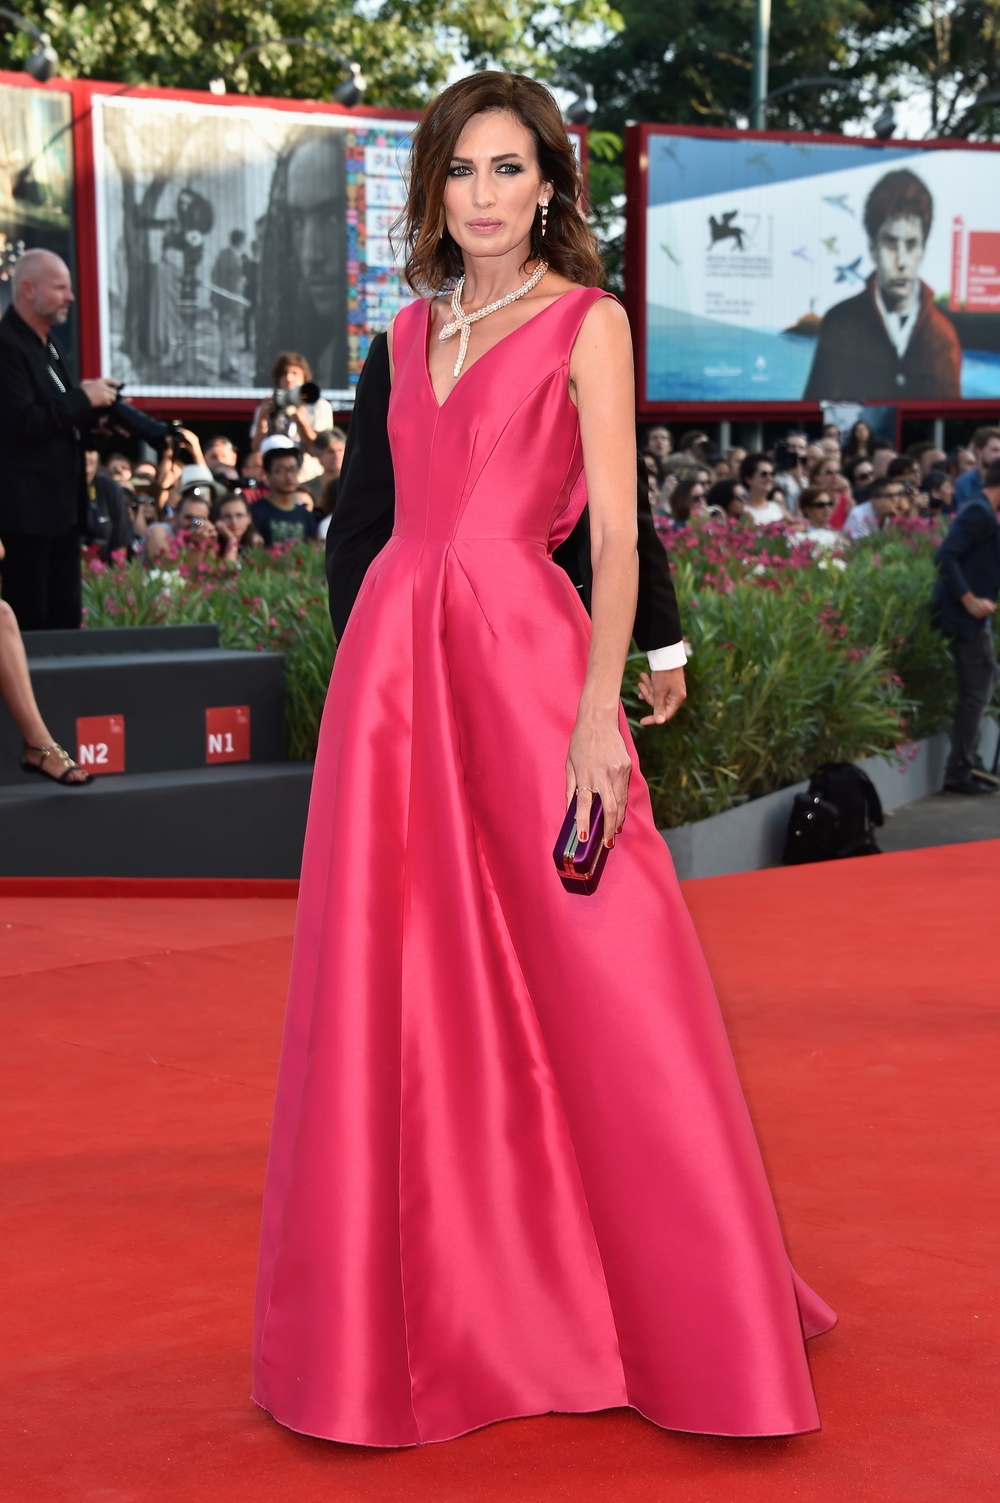 Nieves Alvarez - Venice Film Festival Opening Ceremony - Getty Images high res.jpg